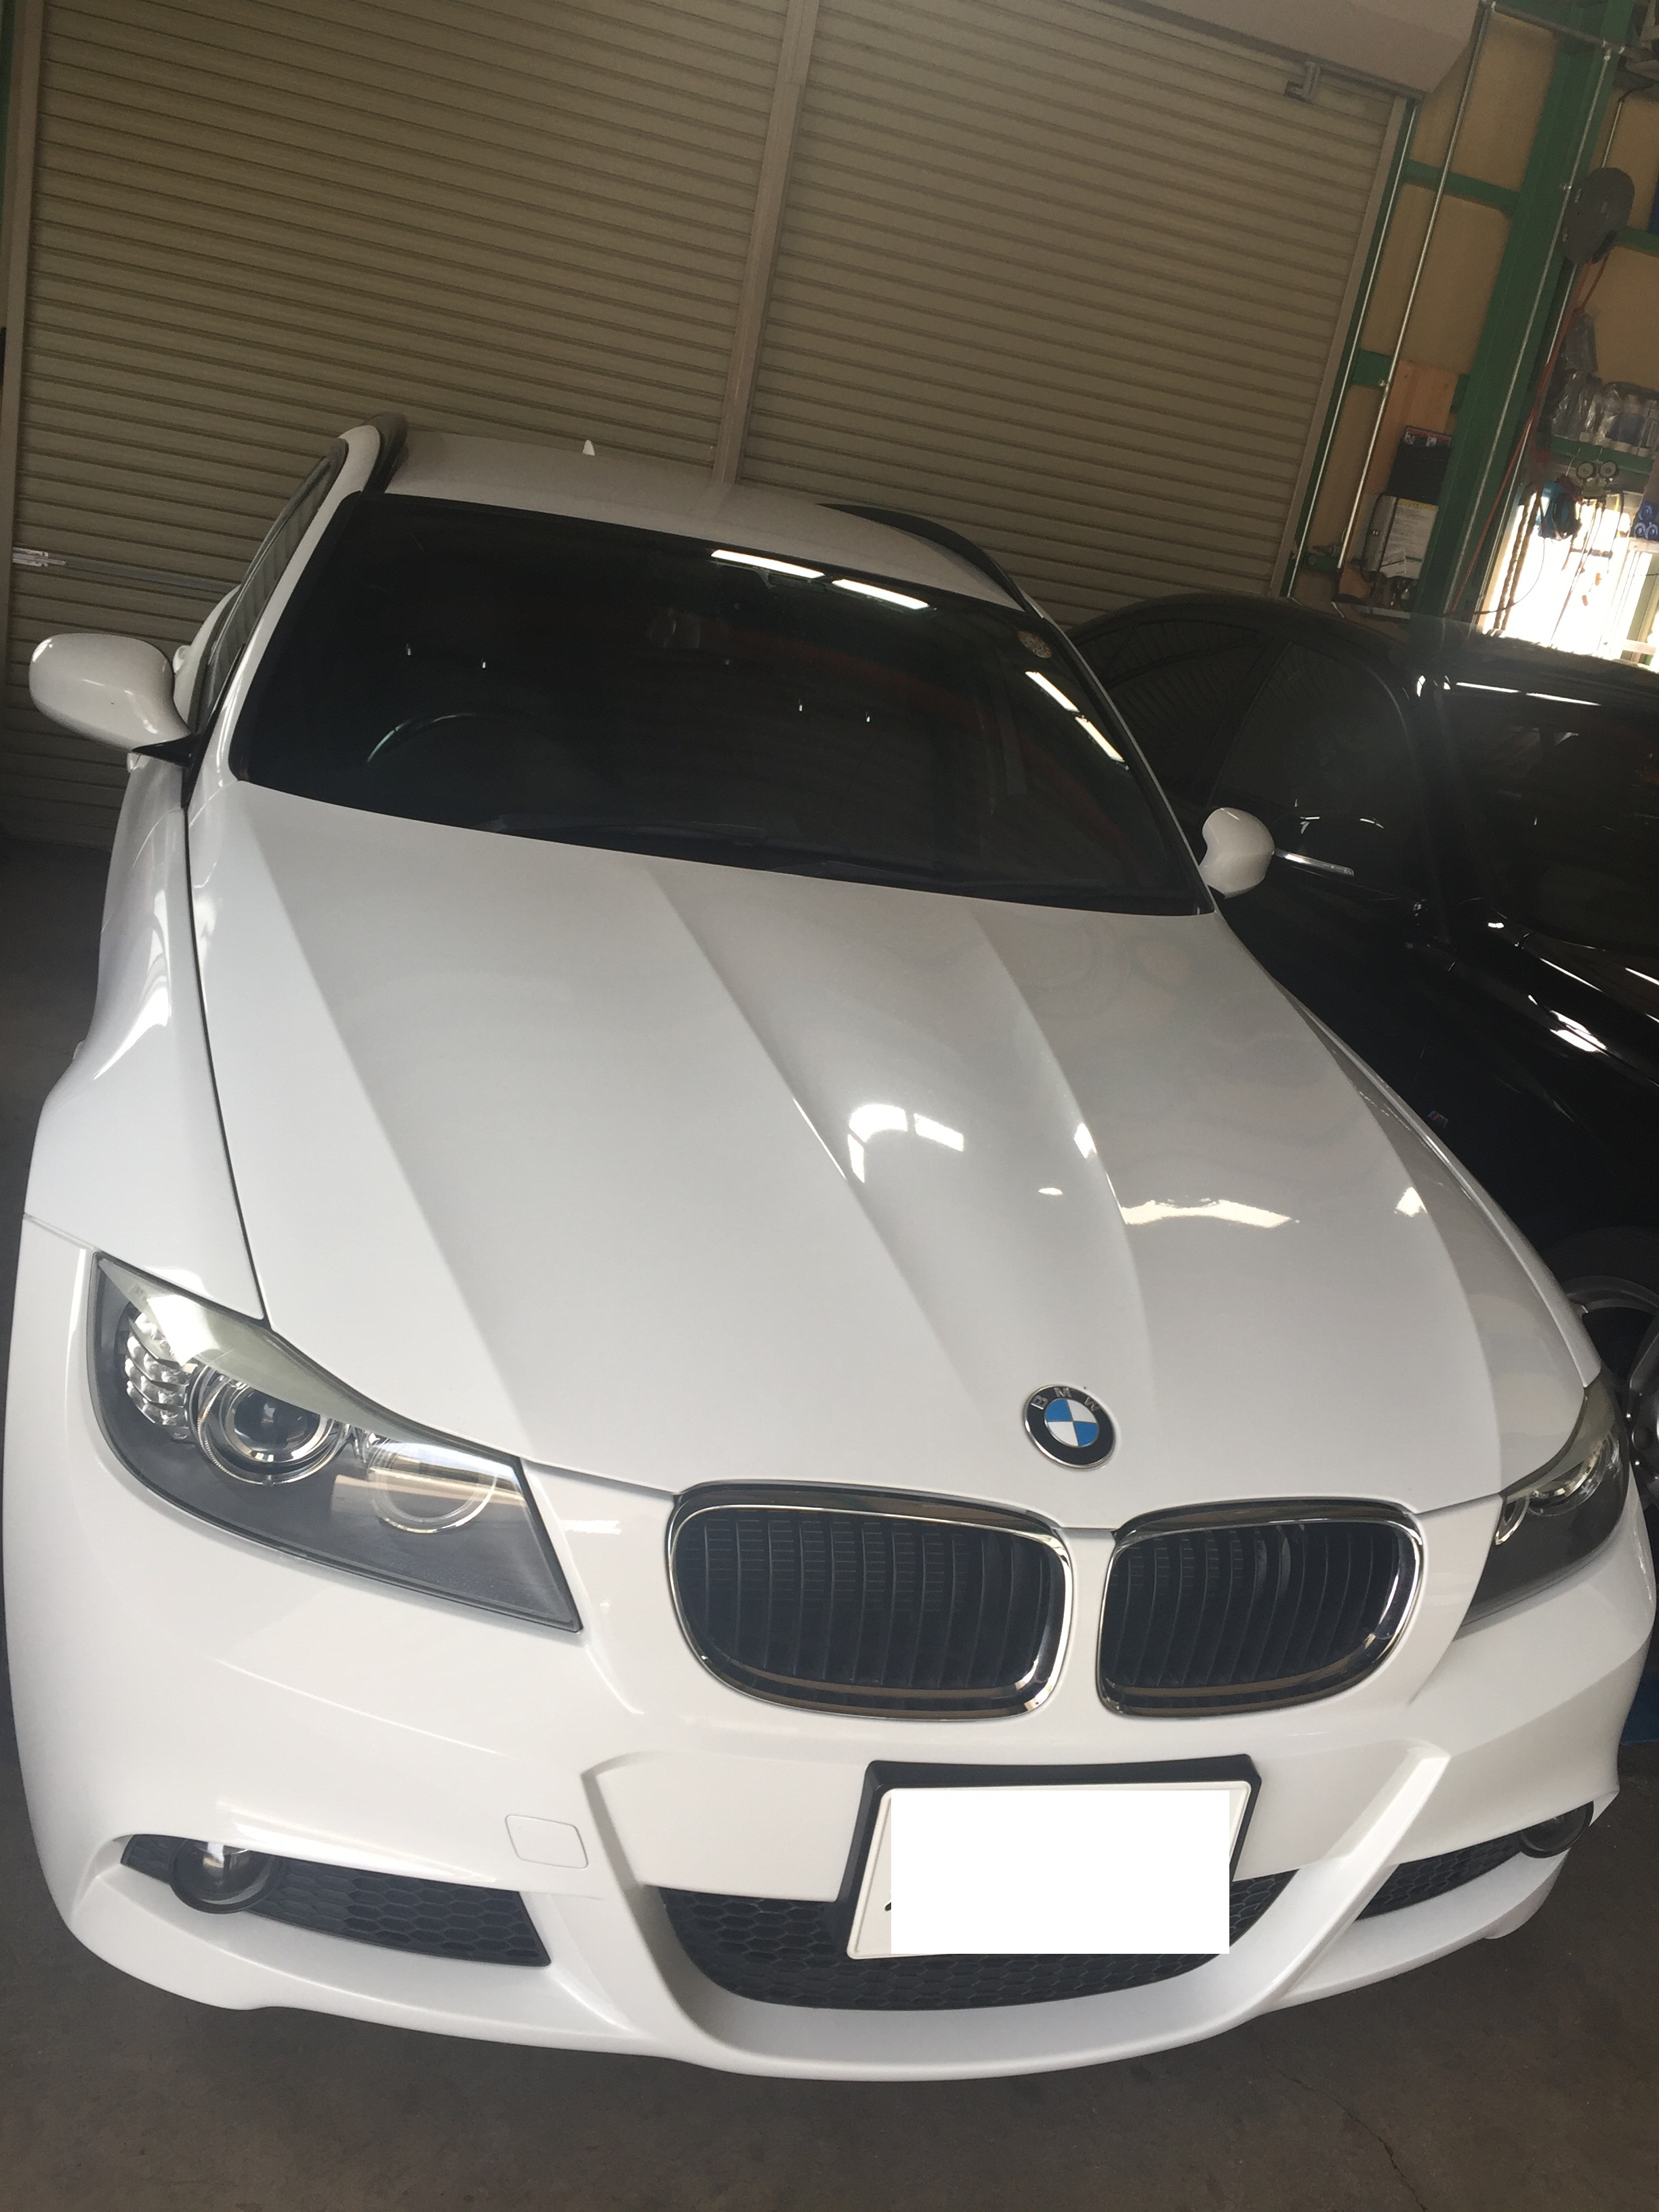 BMWオイル漏れ修理        BMW修理 豊田市